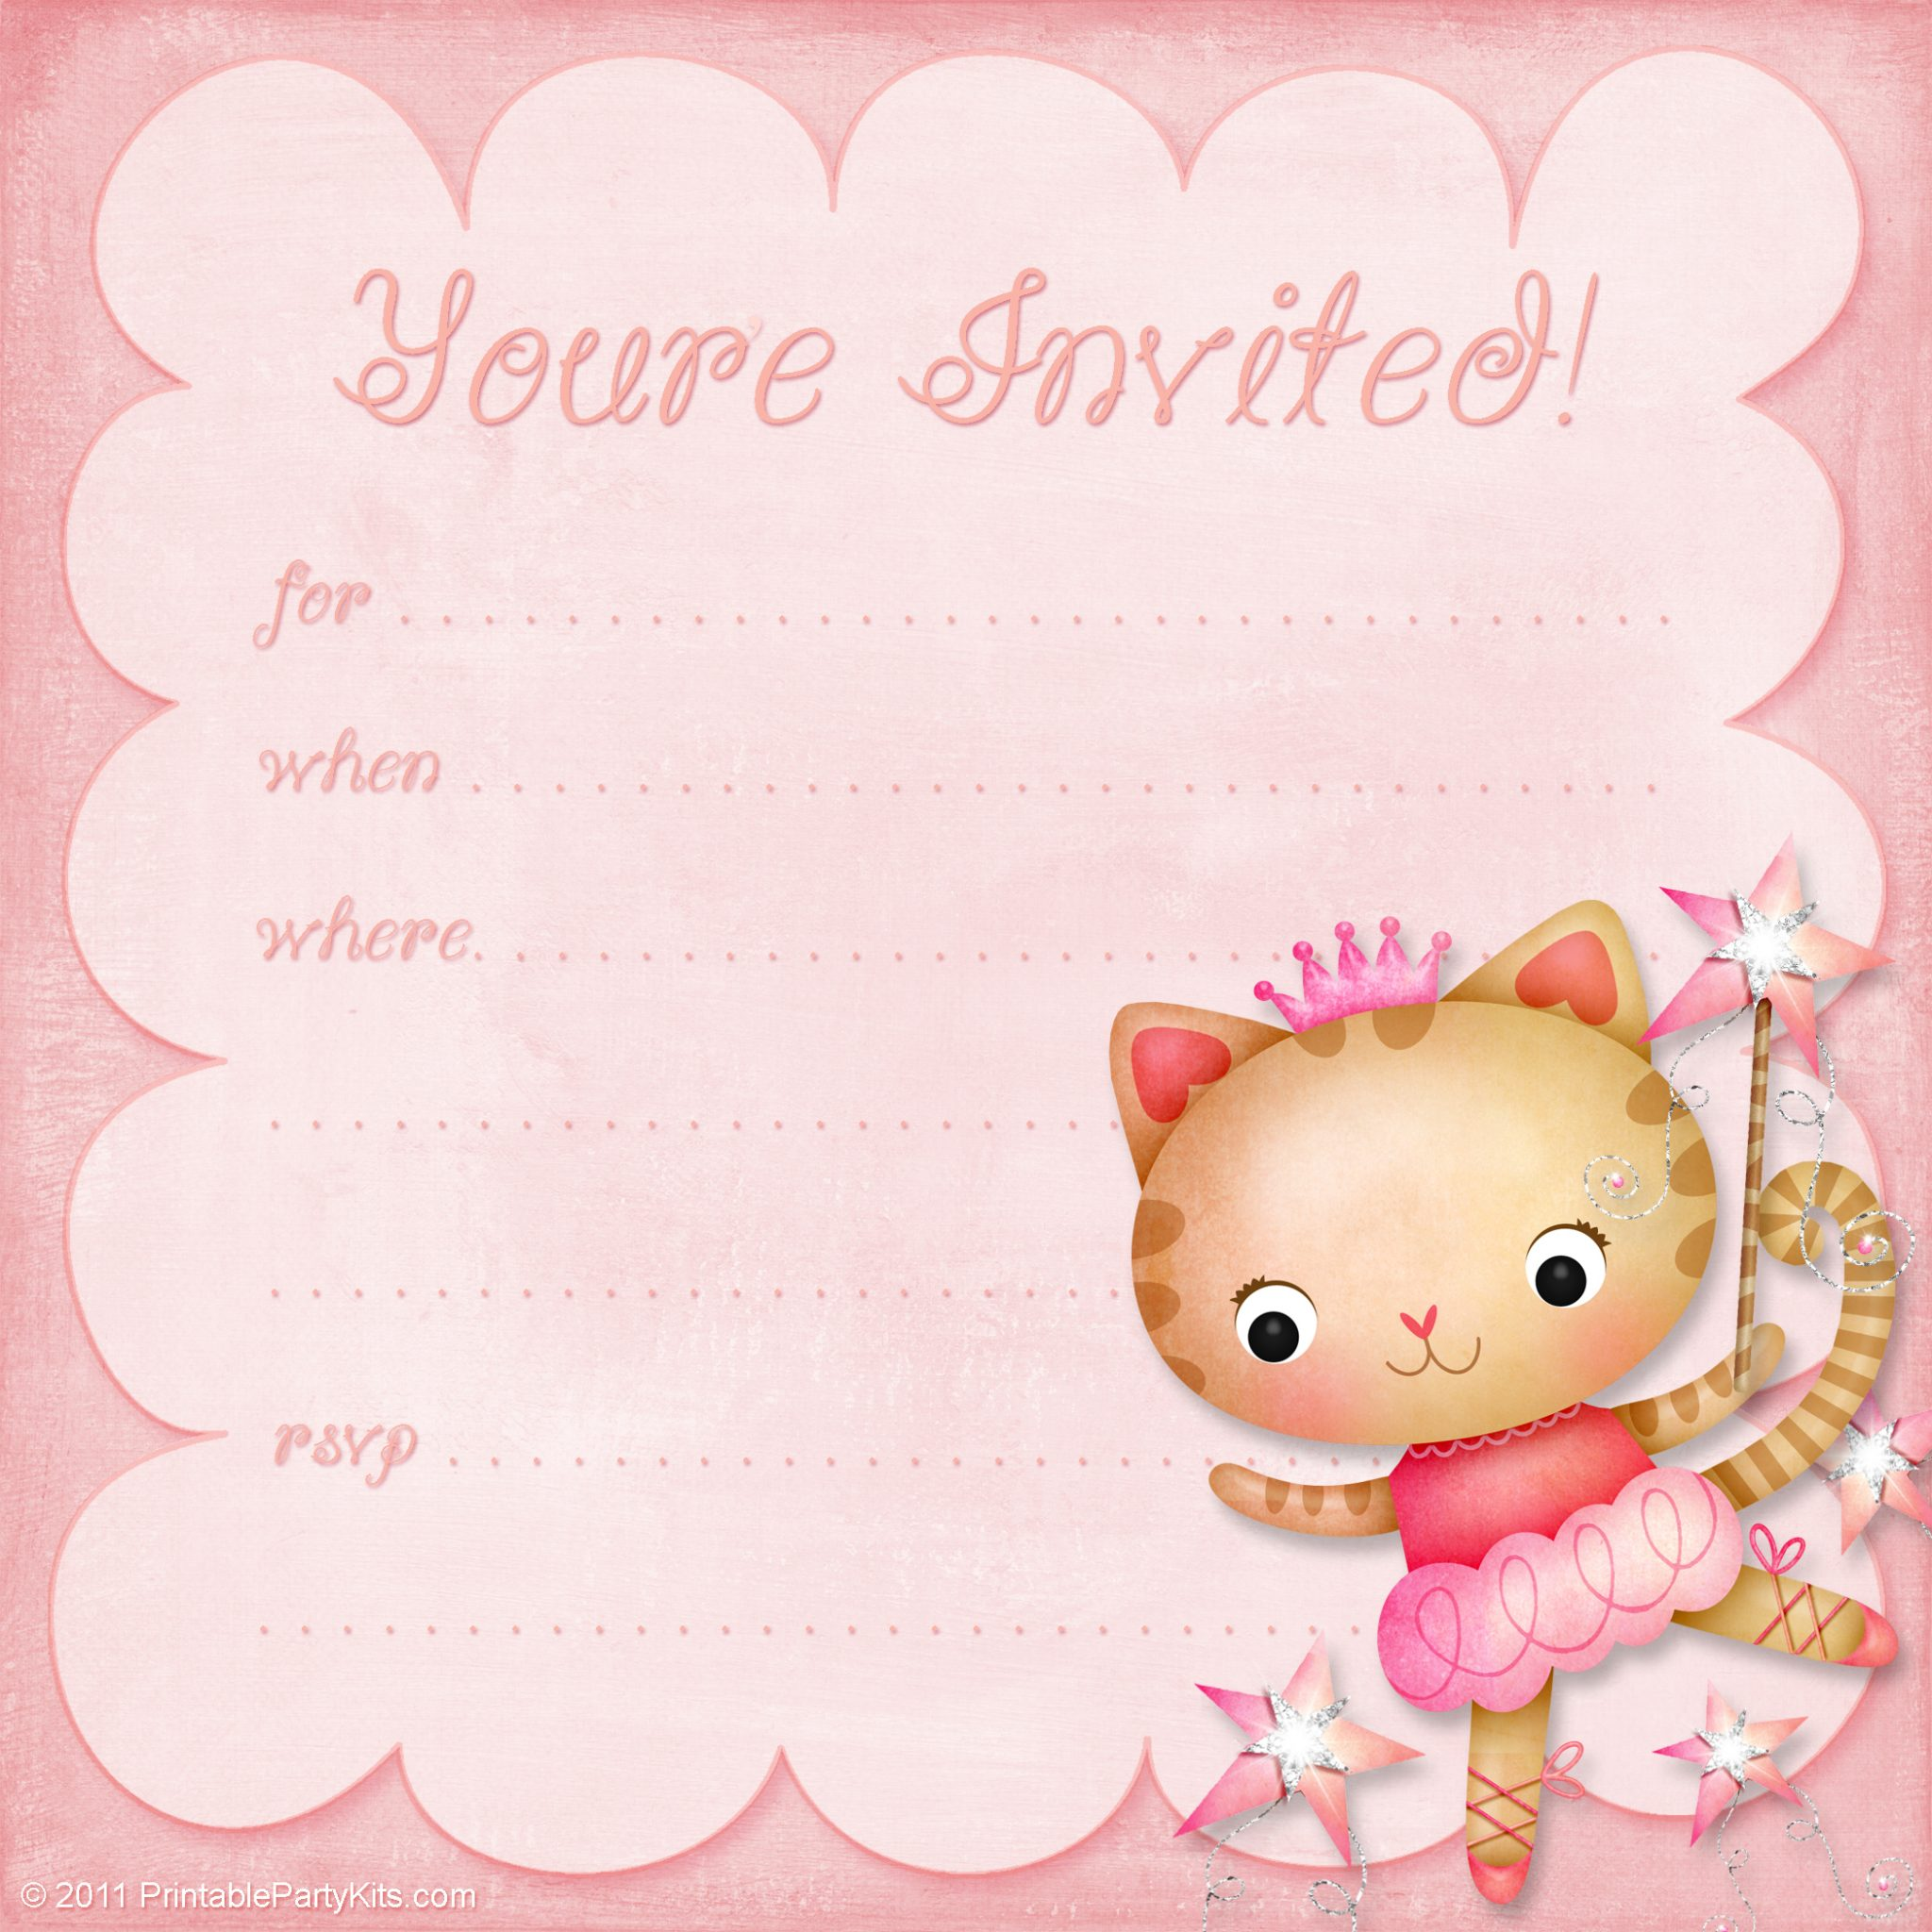 click on the free printable blank girls birthday invitation template below to enlarge and download it - Girl Birthday Party Invitations